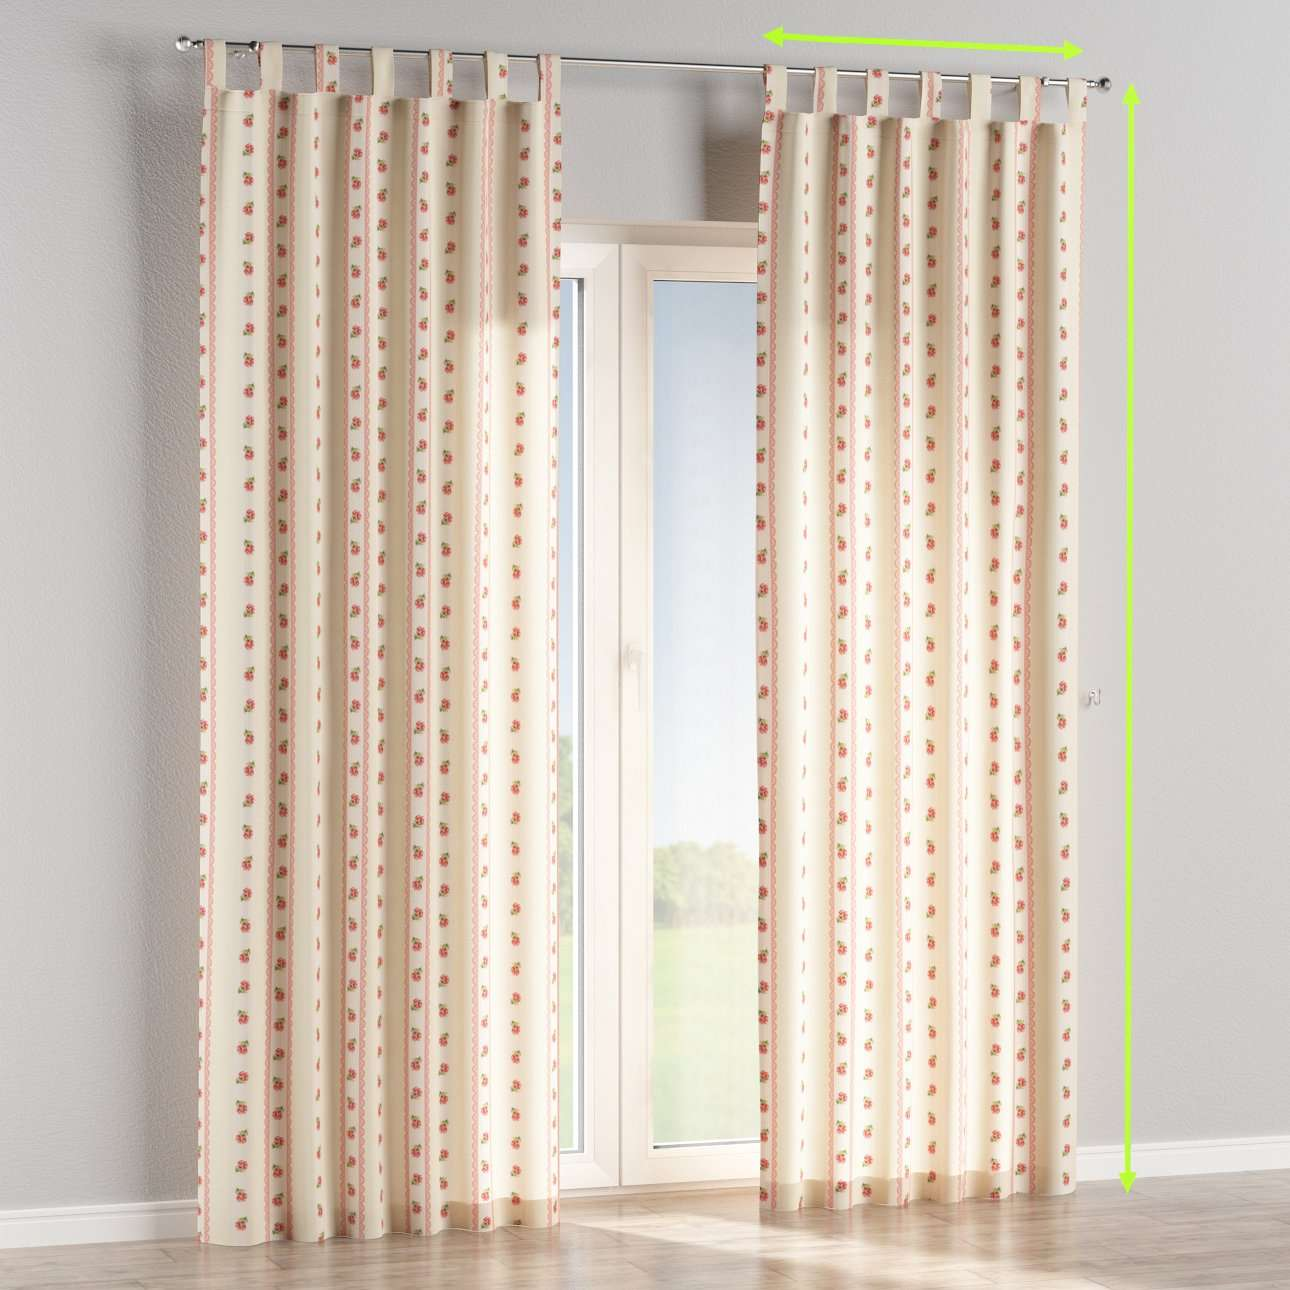 Tab top curtains in collection Ashley, fabric: 137-48